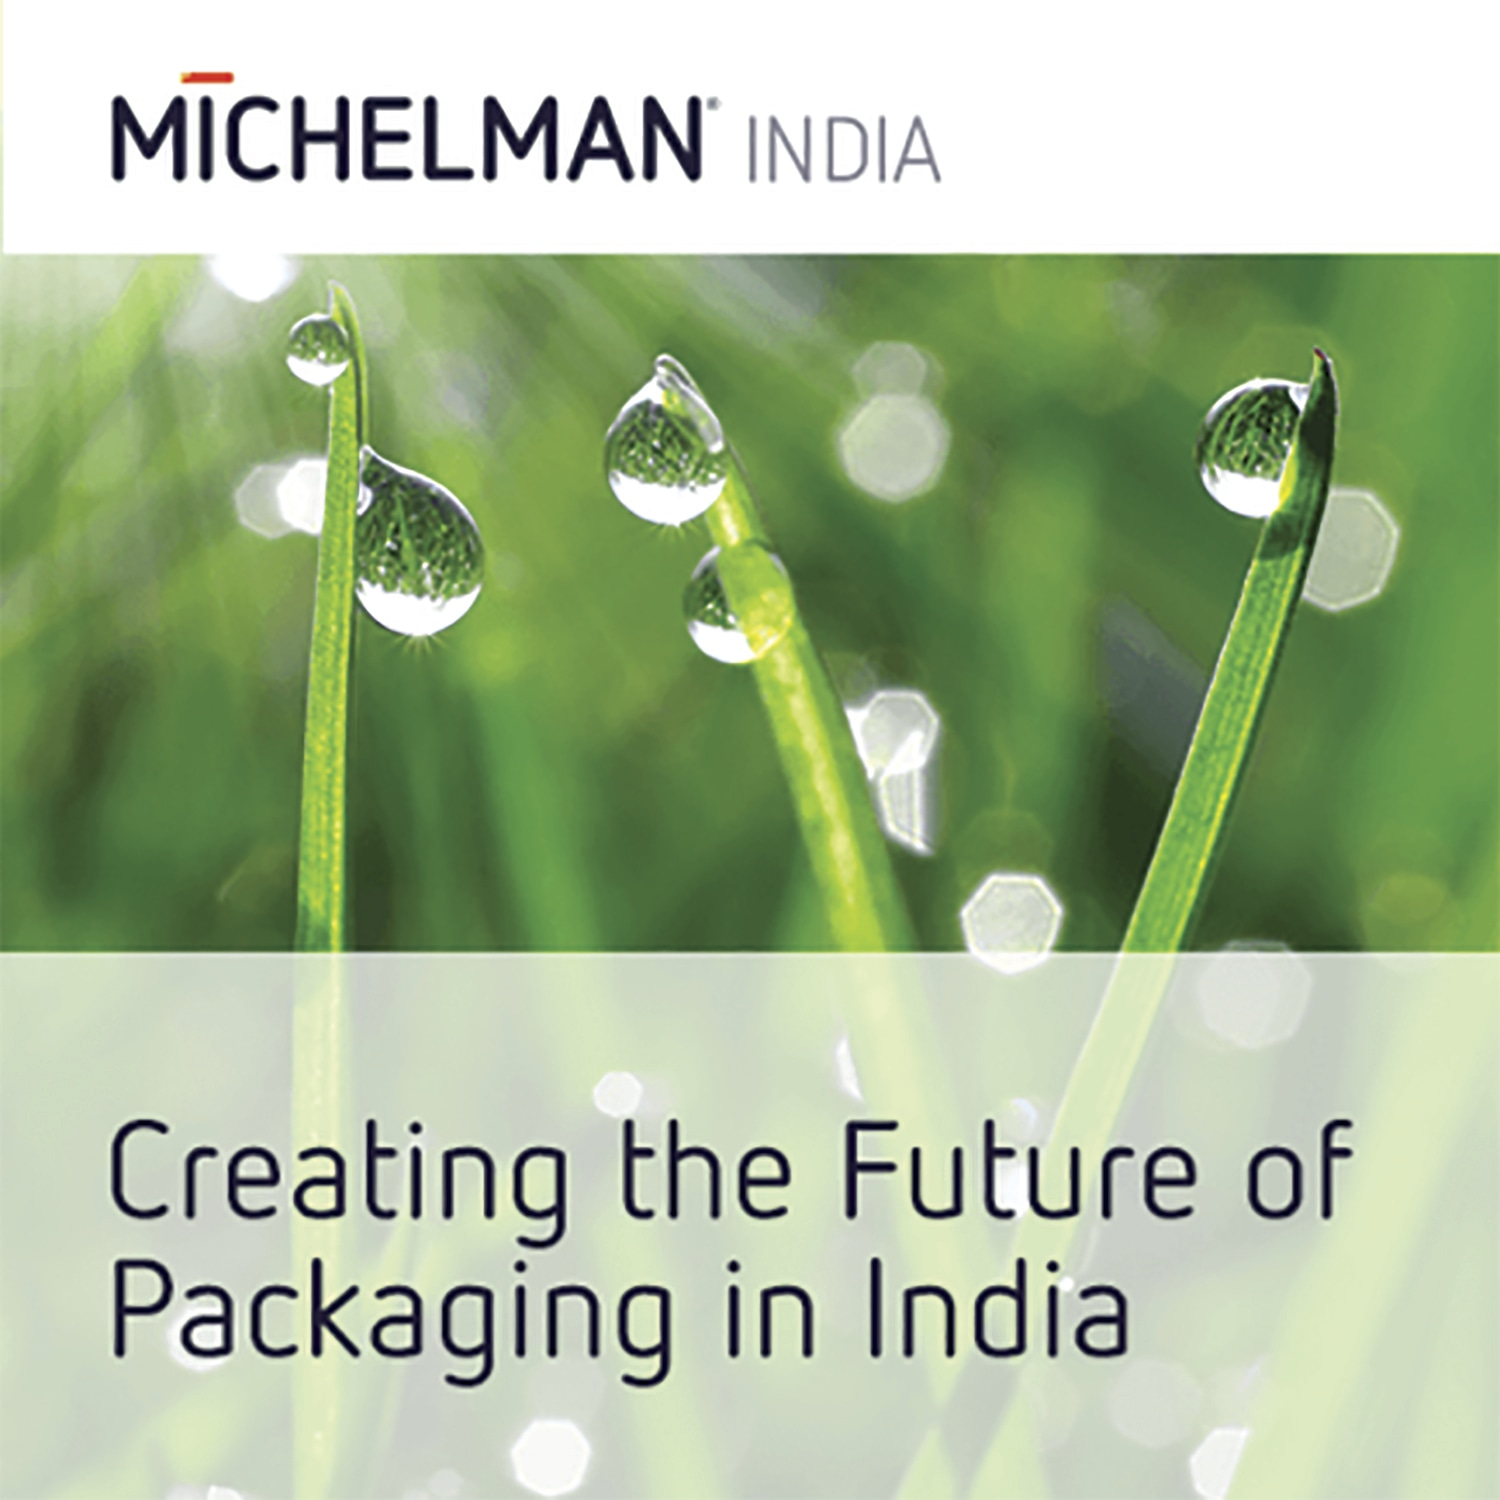 Michelman Innovation Centre for Coatings is Creating the Future of Packaging in India